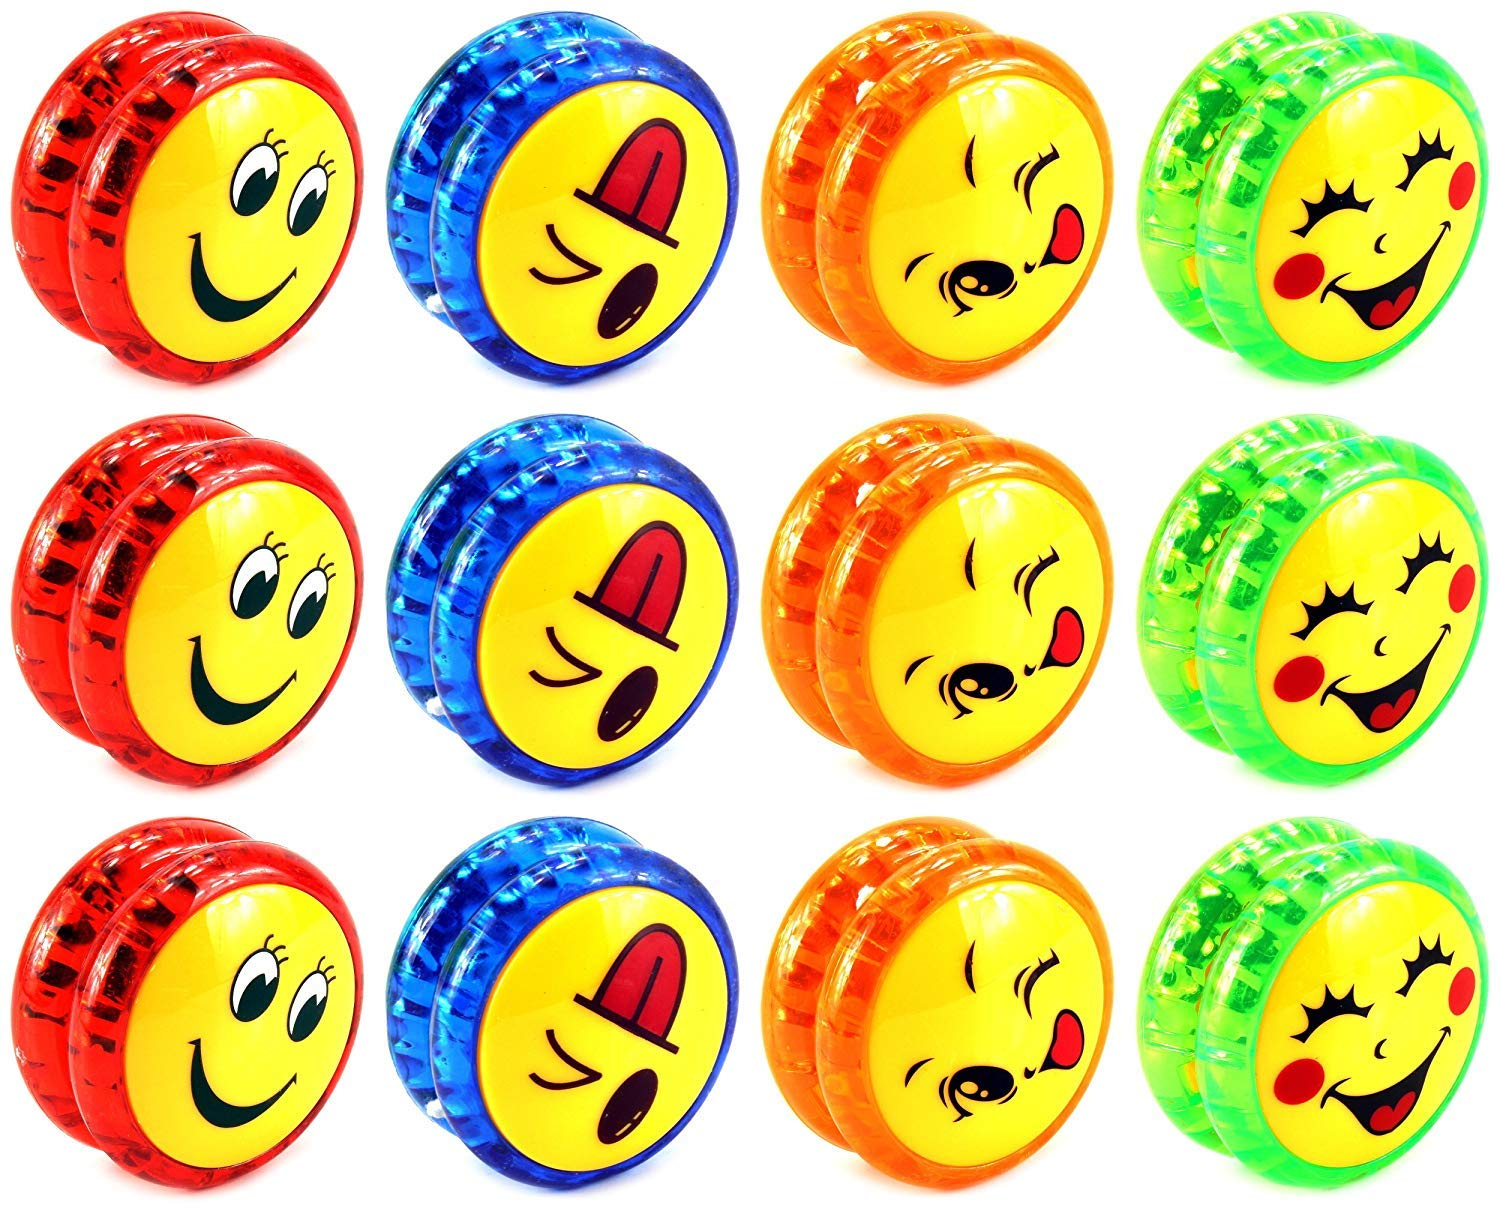 AJ Toys & Games 12 PCS Yoyo 'Smiley Faces' Light Up Children's Kid's Toy Yoyo (Colors May Vary)